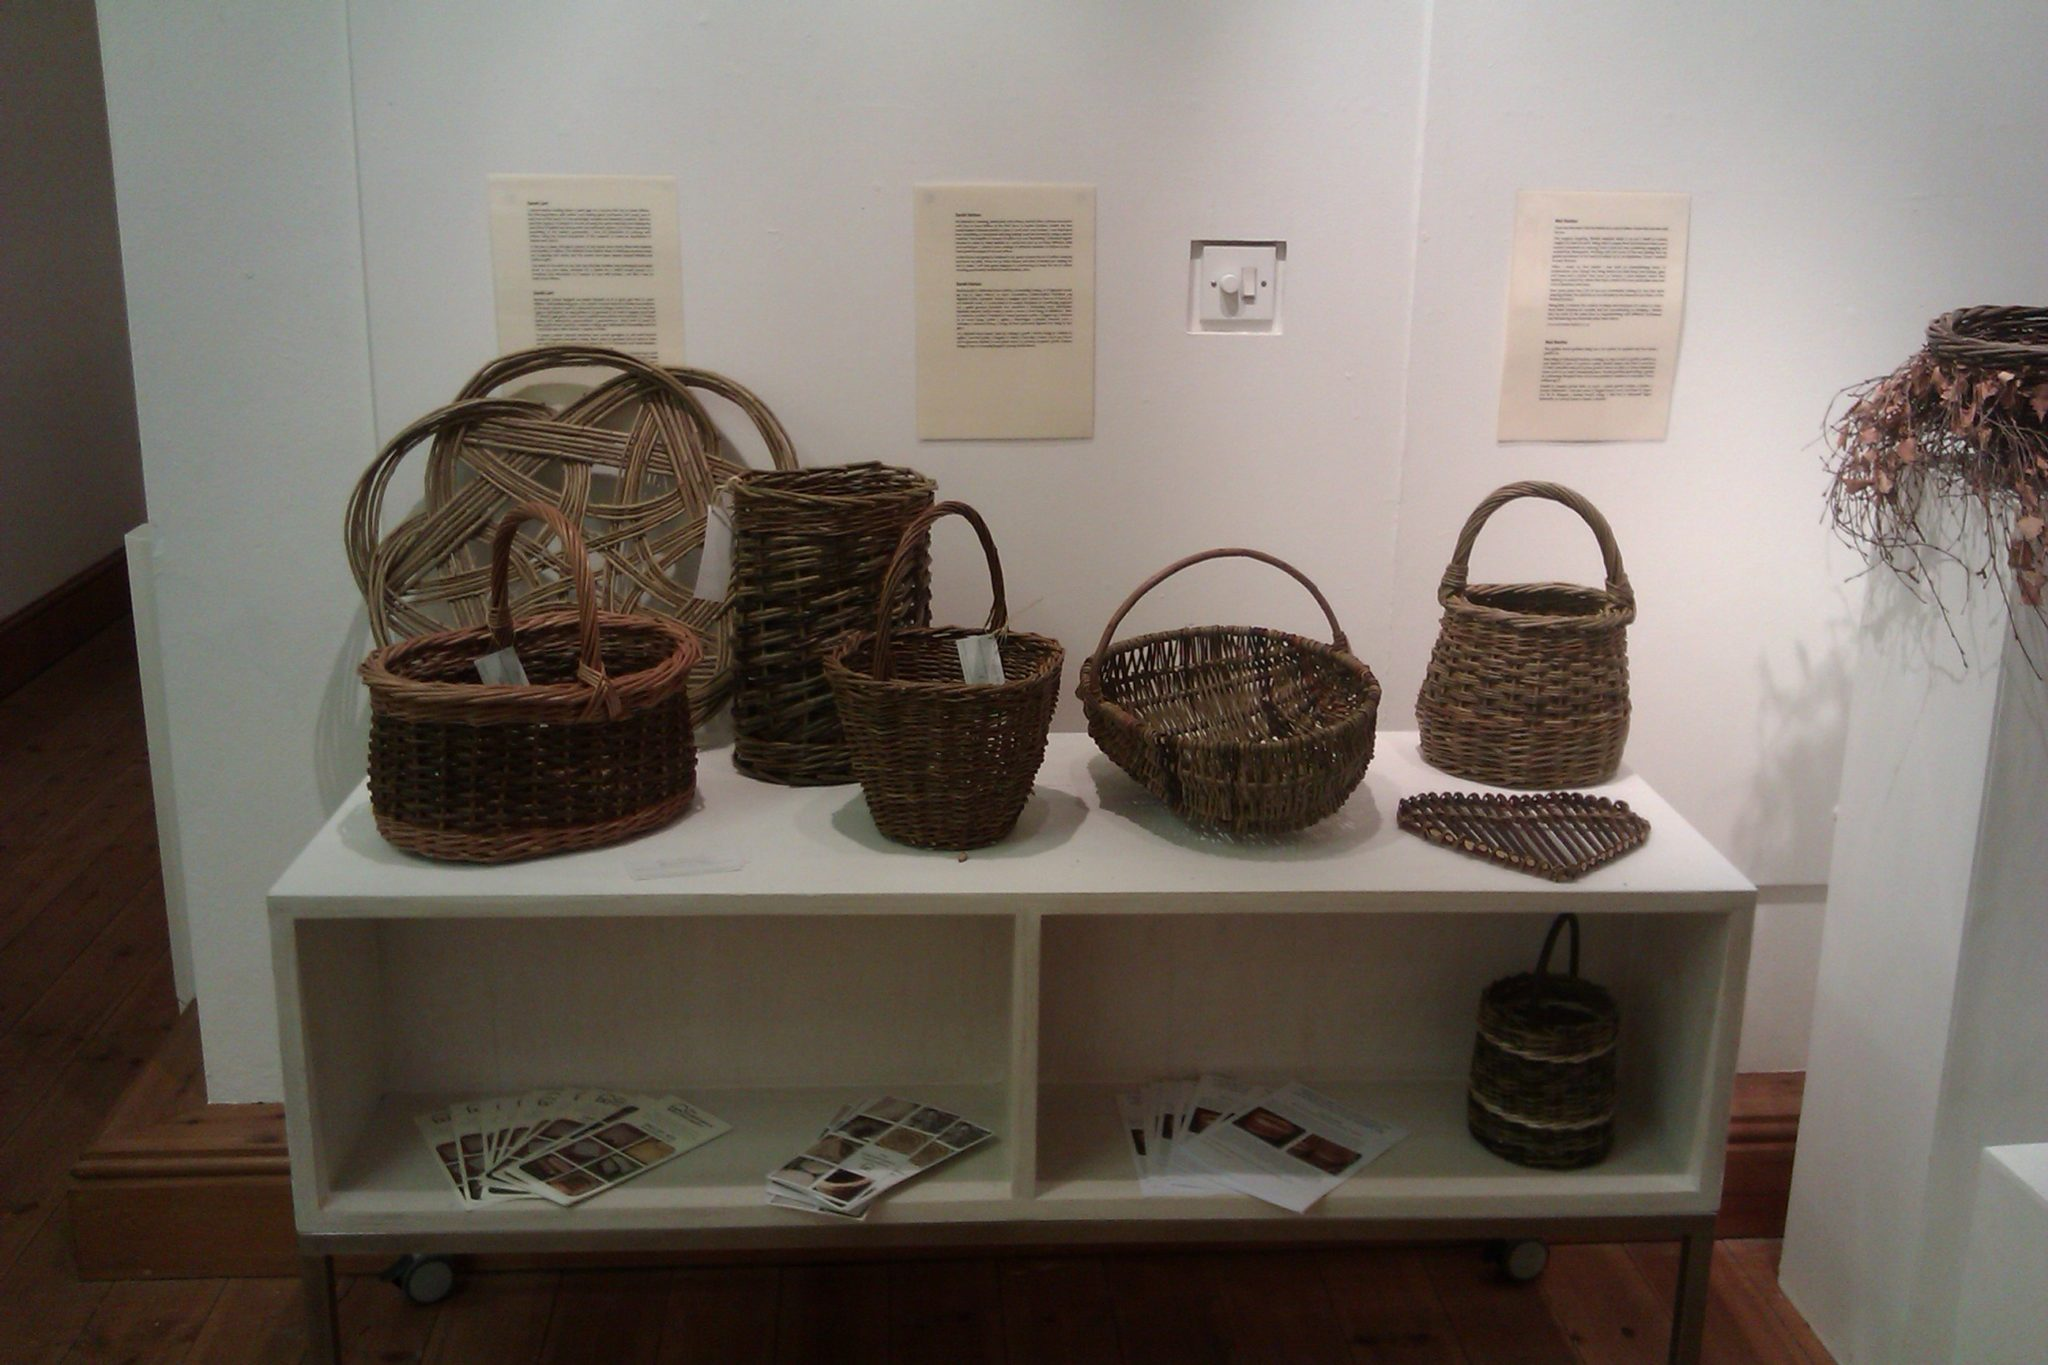 South Wales Basketmakers contribution to Art of Basketry Exhibition